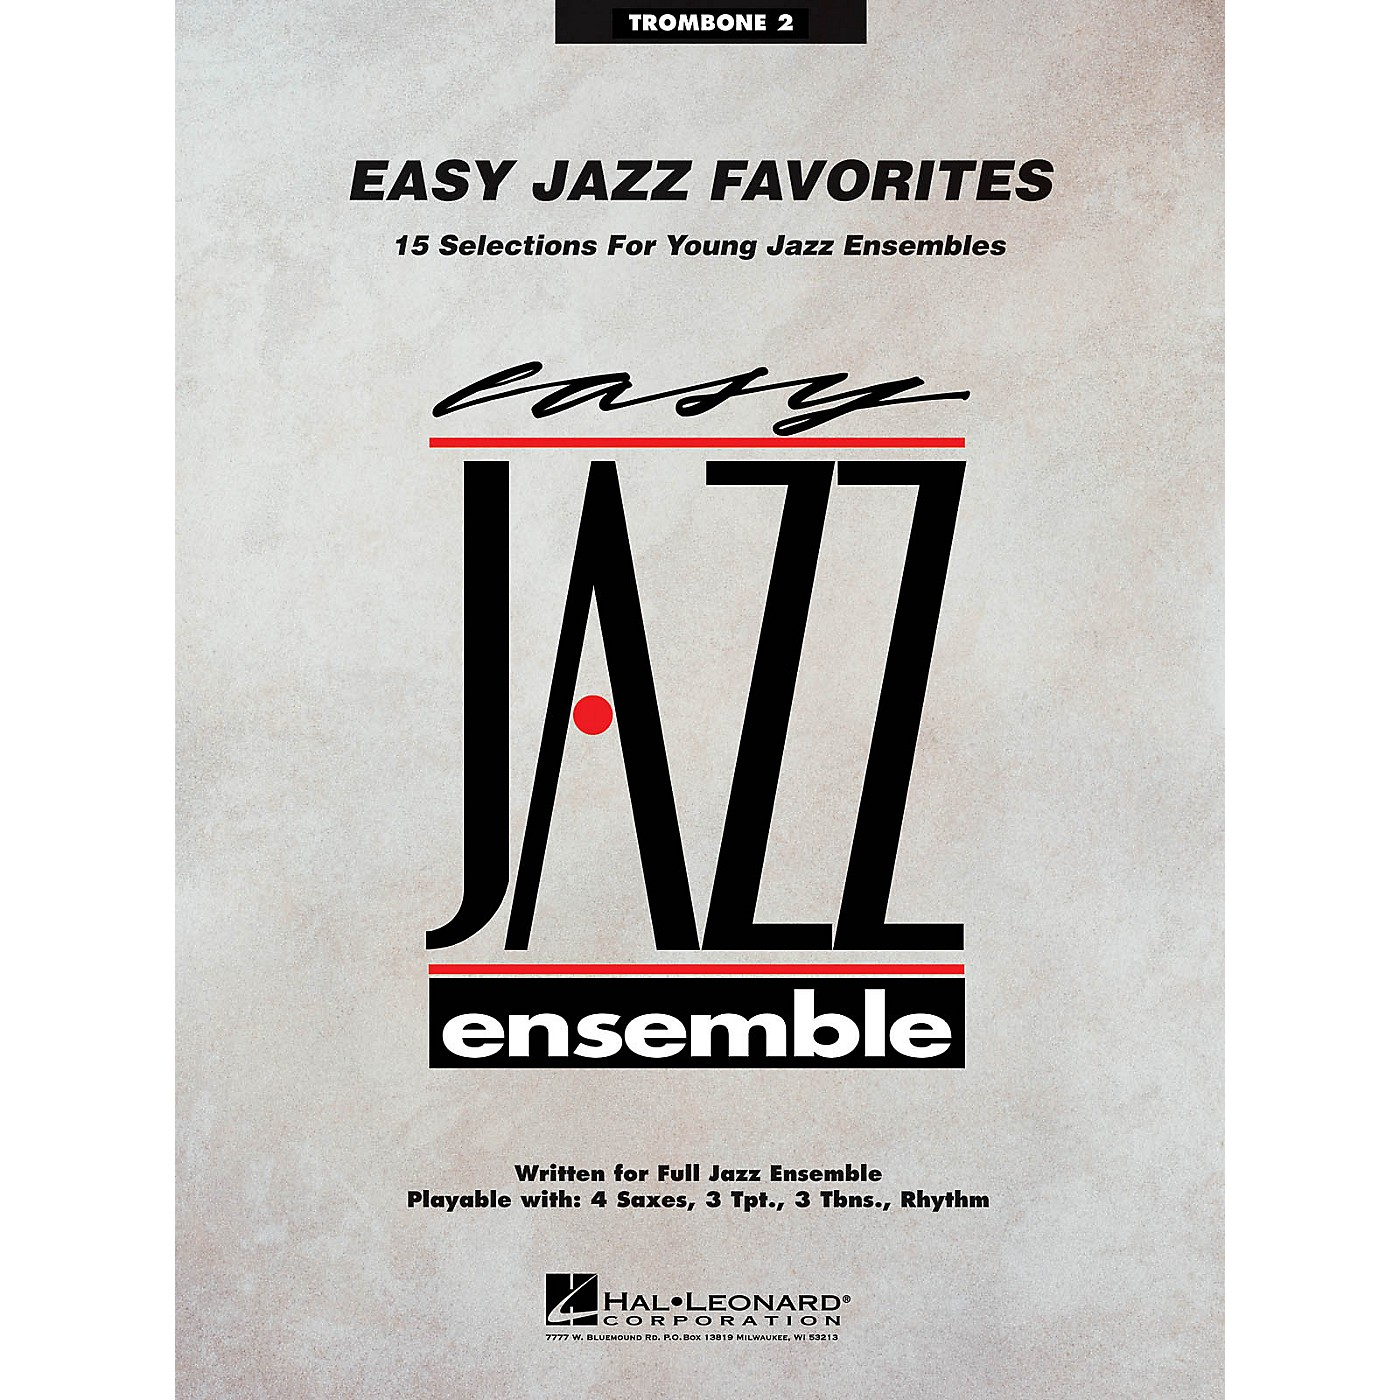 Hal Leonard Easy Jazz Favorites - Trombone 2 Jazz Band Level 2 Composed by Various thumbnail